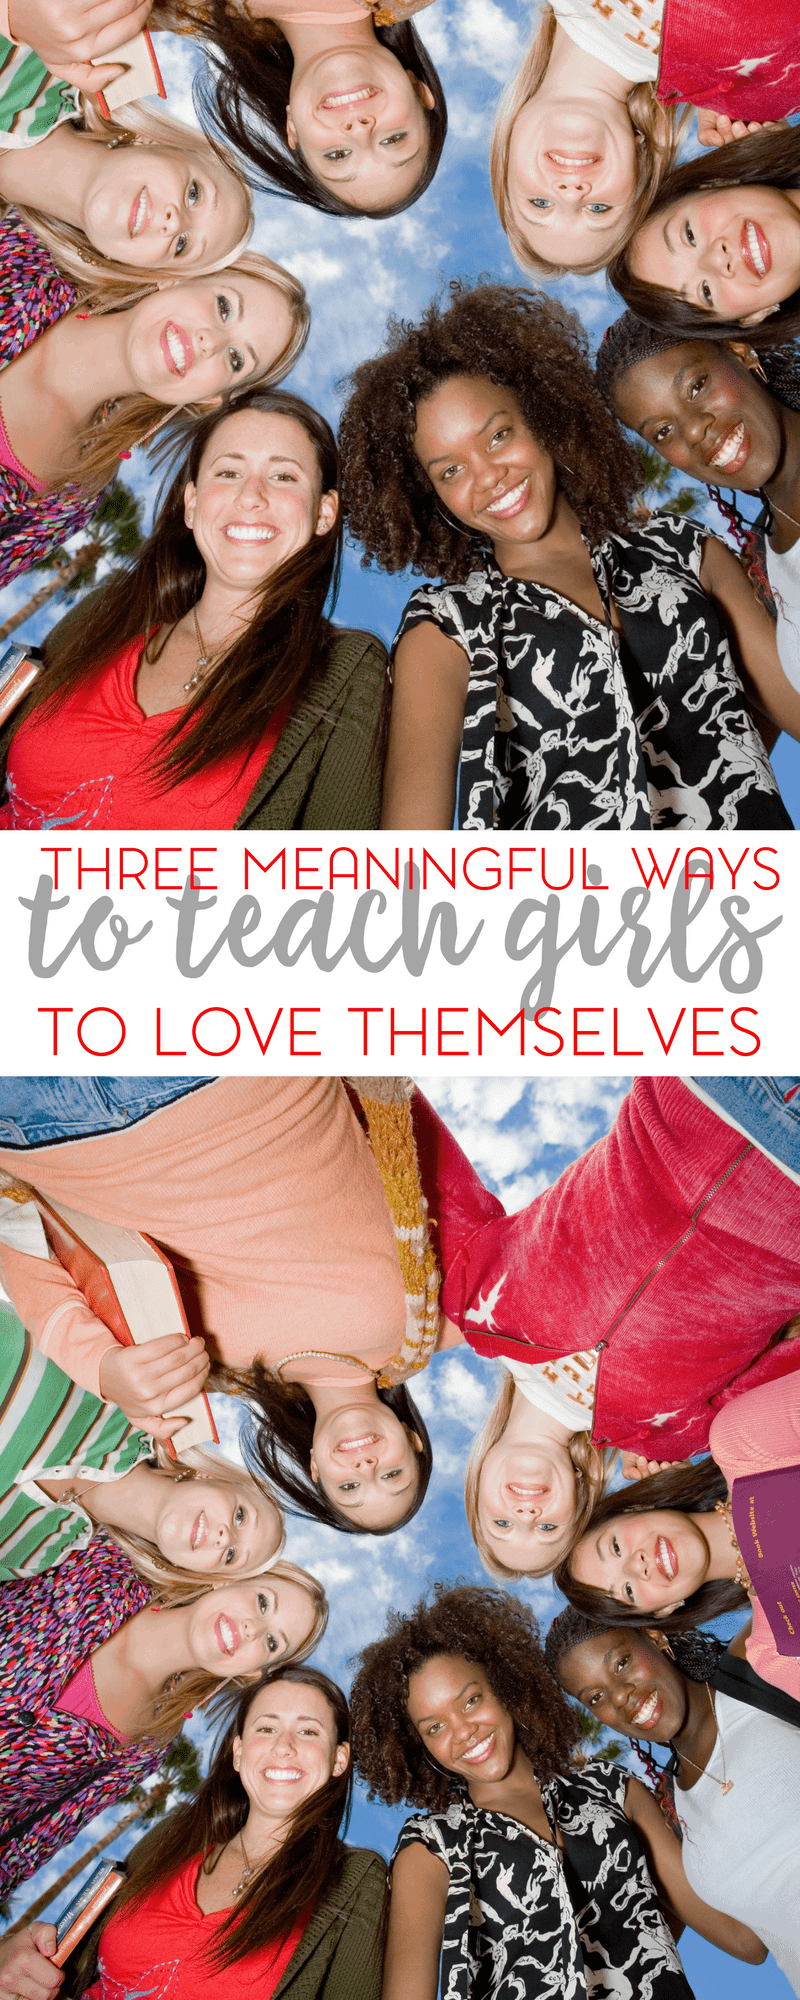 If your daughter's self esteem is in the dumps or if you're just trying to prepare her for life; here are 3 meaningful ways to teach girls to love themselves.